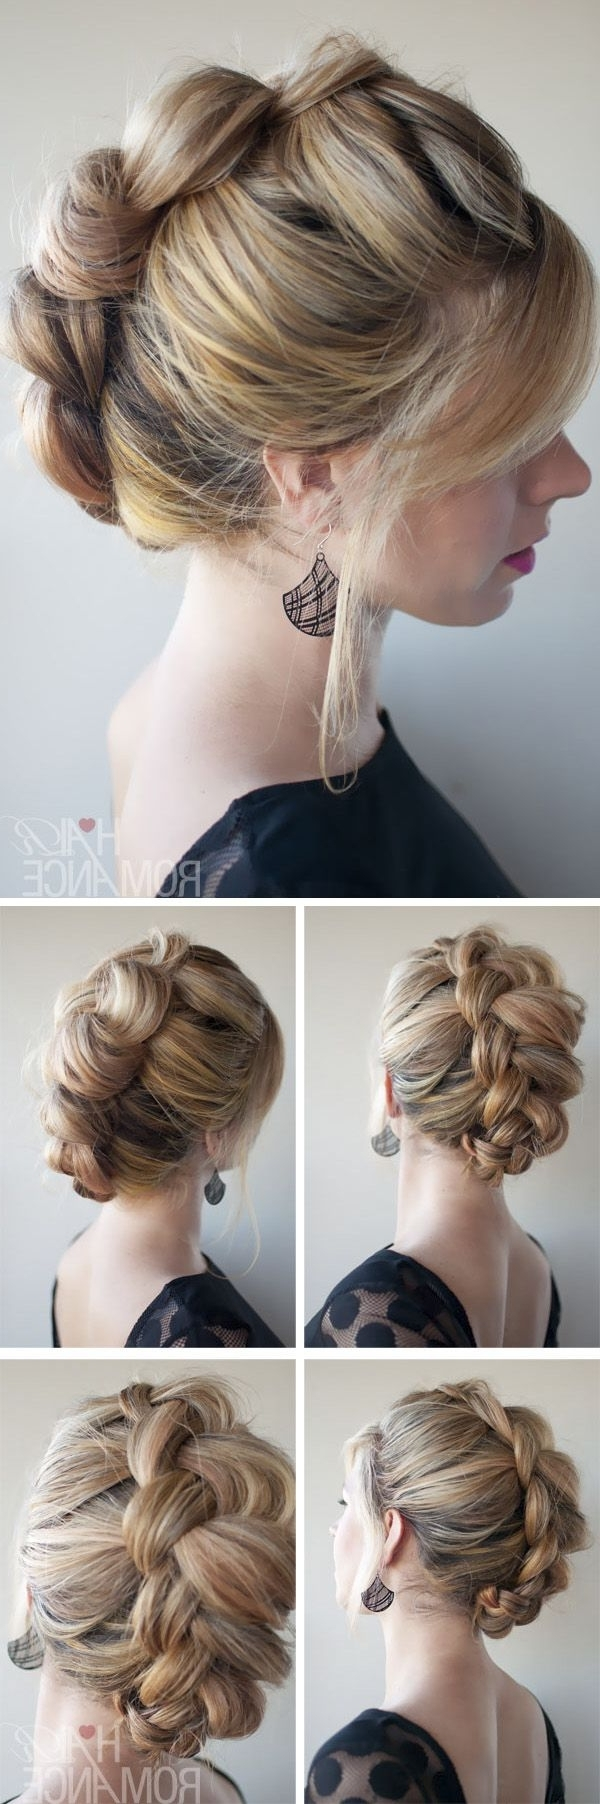 Side Braid With Short Curly Hair How To French Braid Curly Hair With Regard To Most Current Sculptural Punky Ponytail Braids (View 11 of 15)